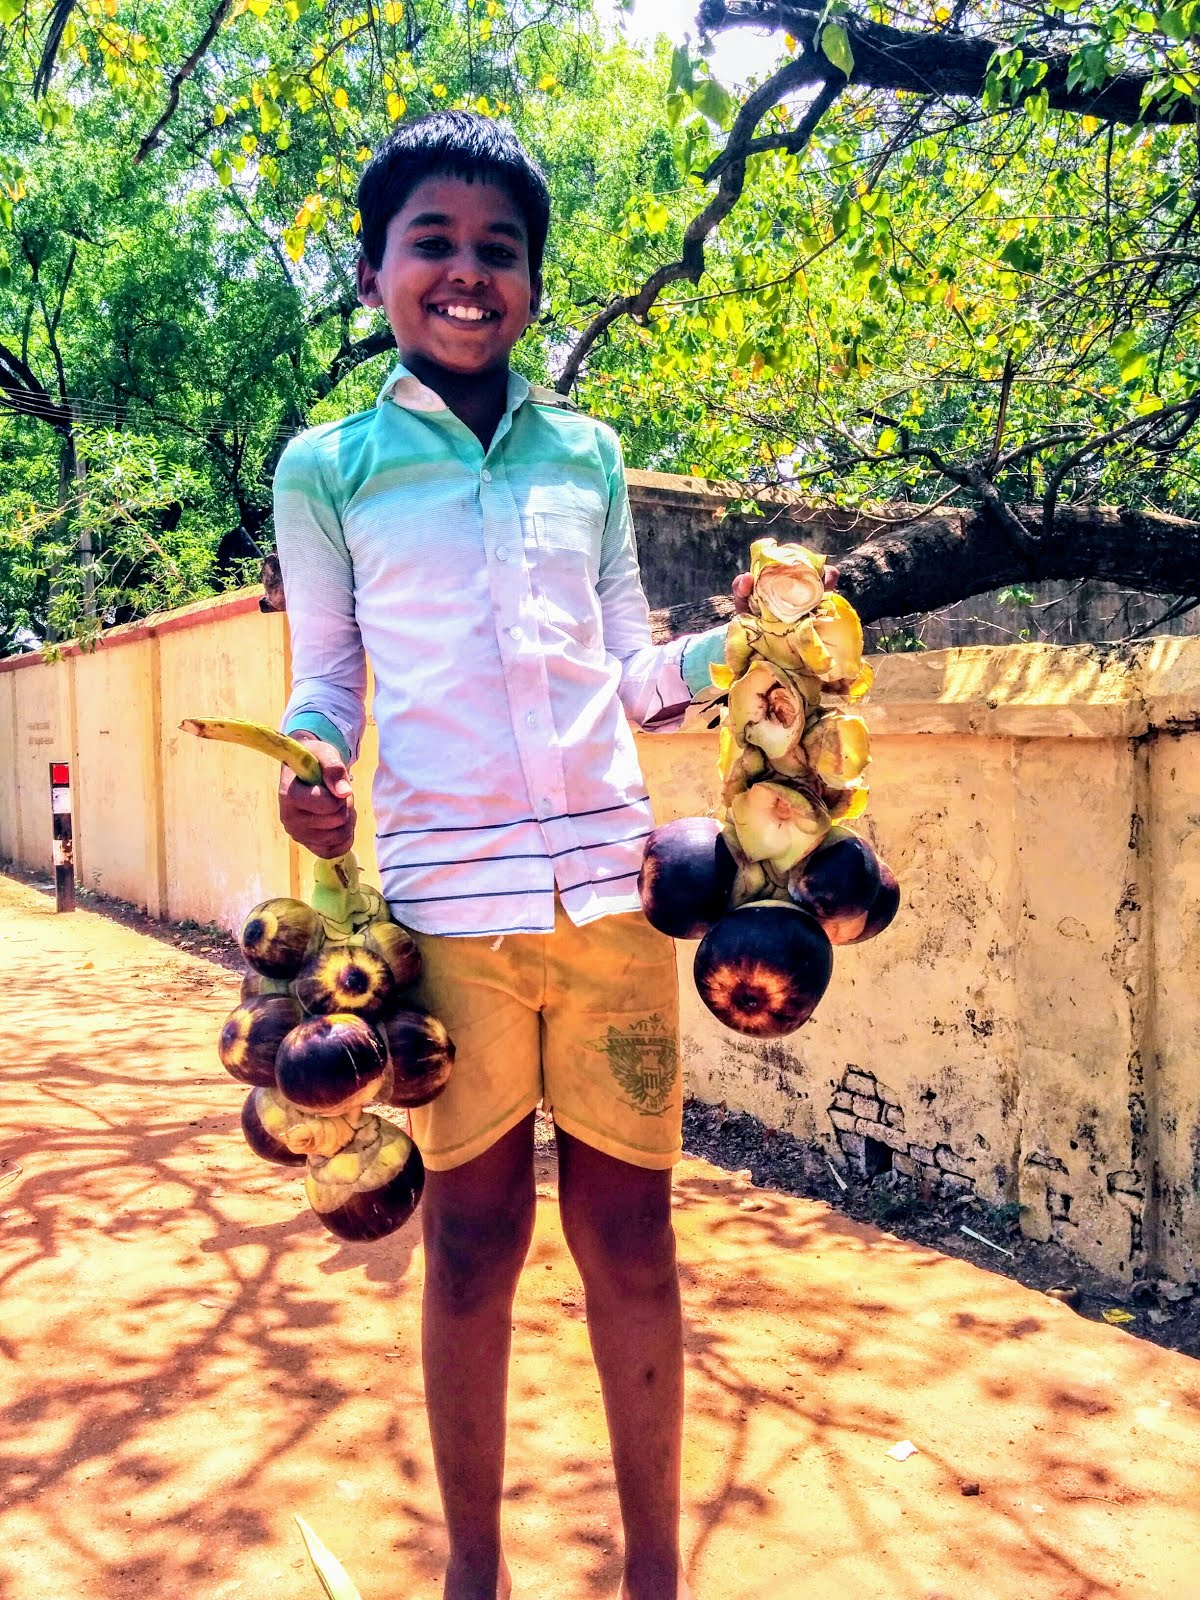 Kid all smiles with his Palm fruit at Kallidaikurichi